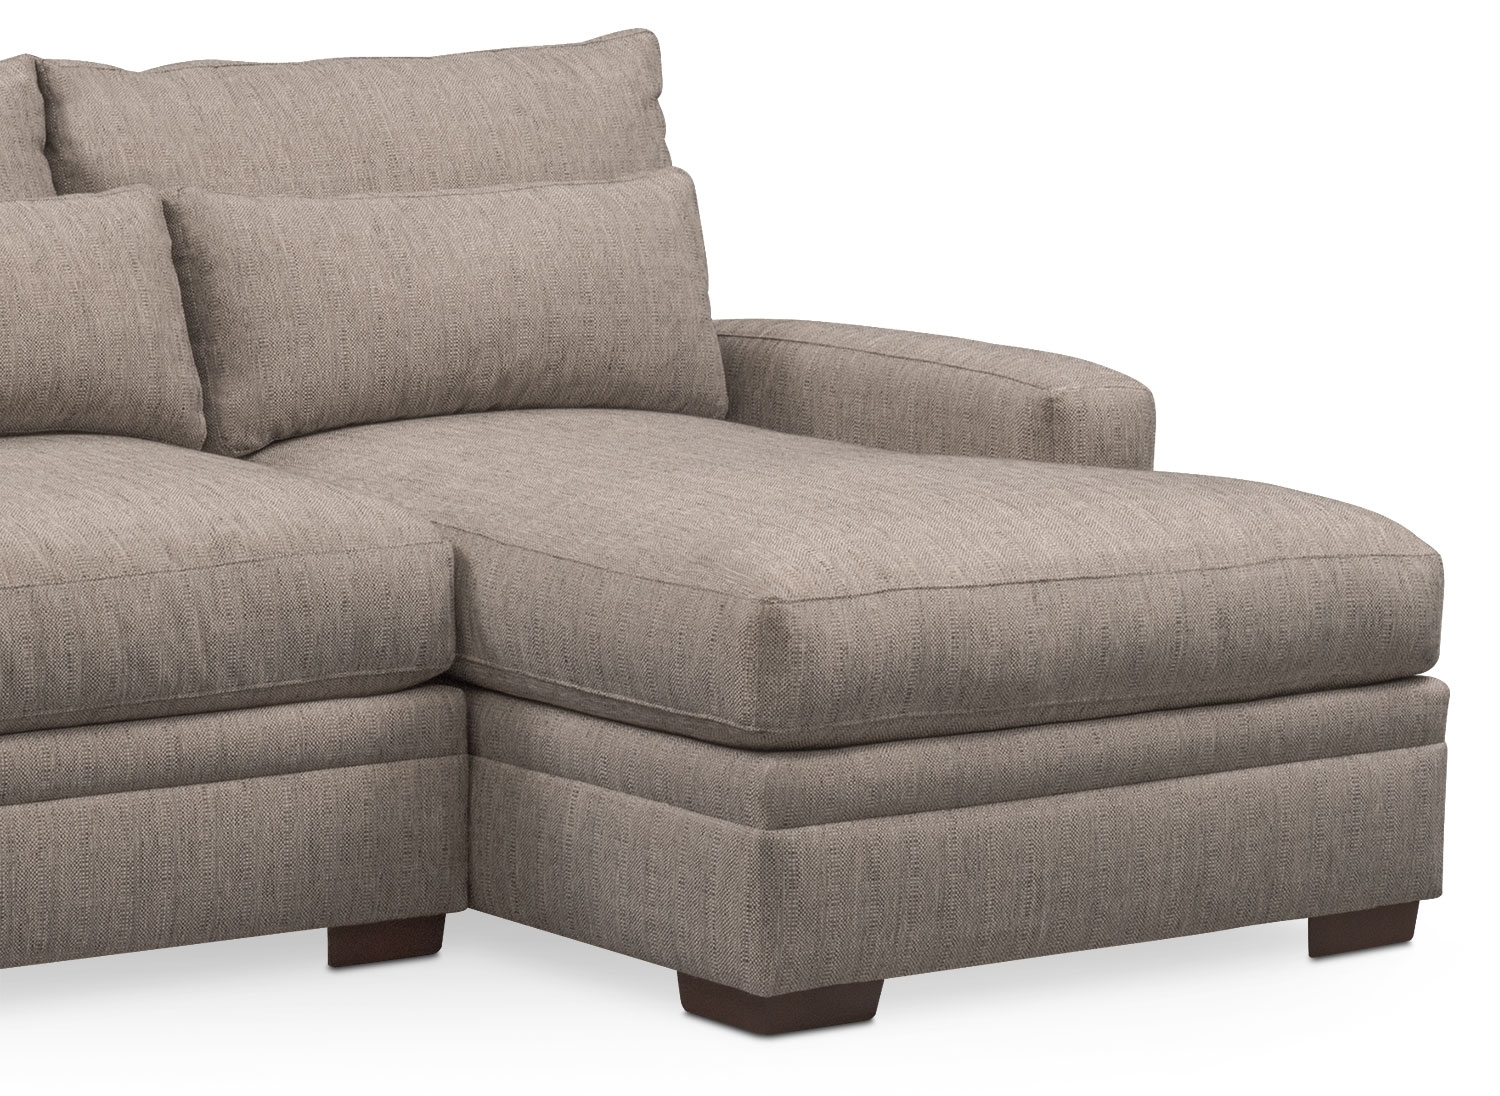 Vcf Sofa Chaise | Baci Living Room Intended For Mcdade Graphite 2 Piece Sectionals With Laf Chaise (View 24 of 25)